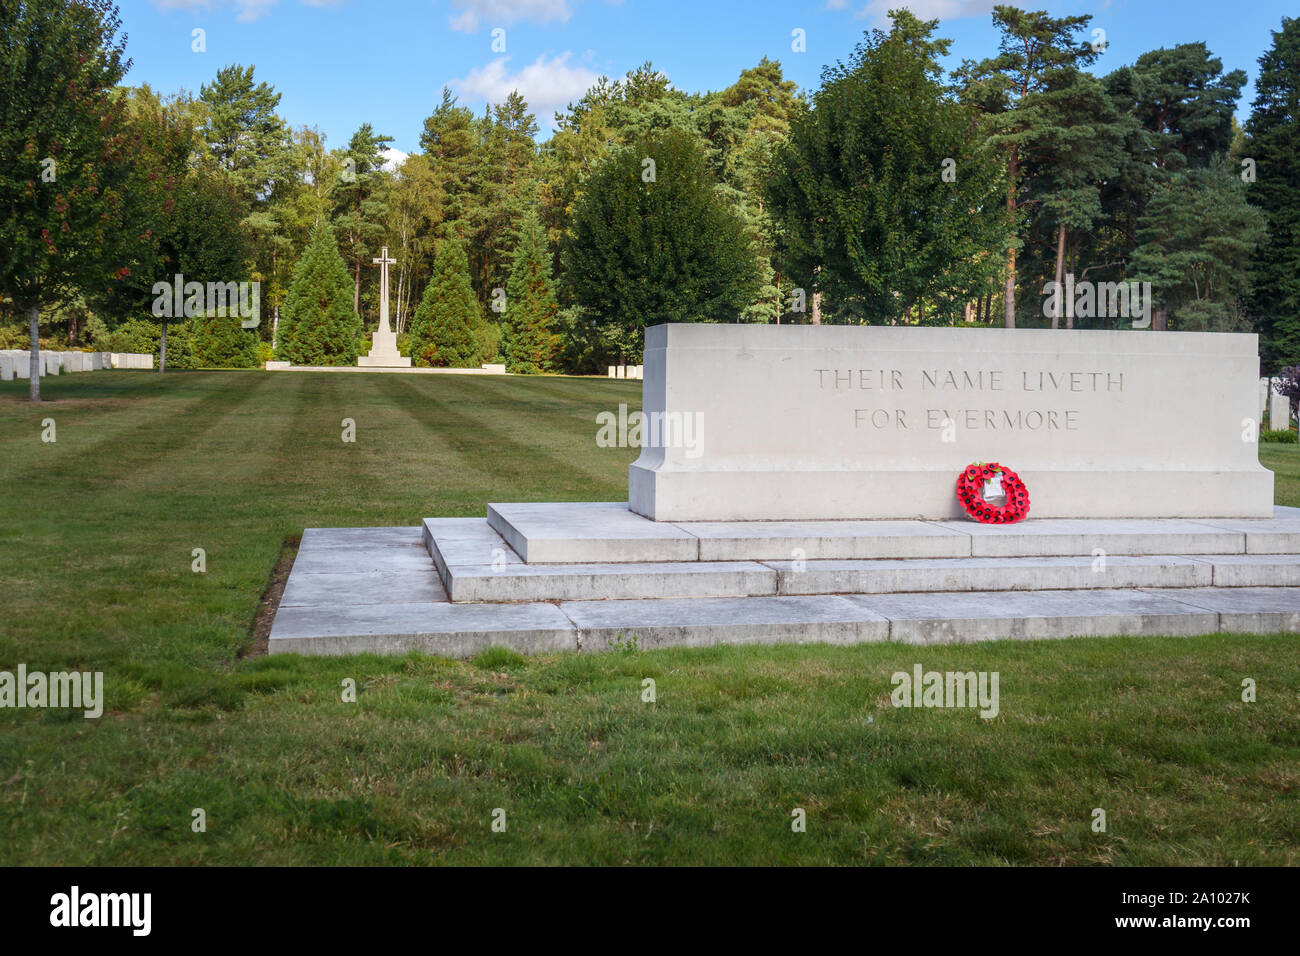 Memorial, gravestones and cross in the Canadian Section of the Military Cemetery at Brookwood Cemetery, Pirbright, Woking, Surrey, southeast England Stock Photo